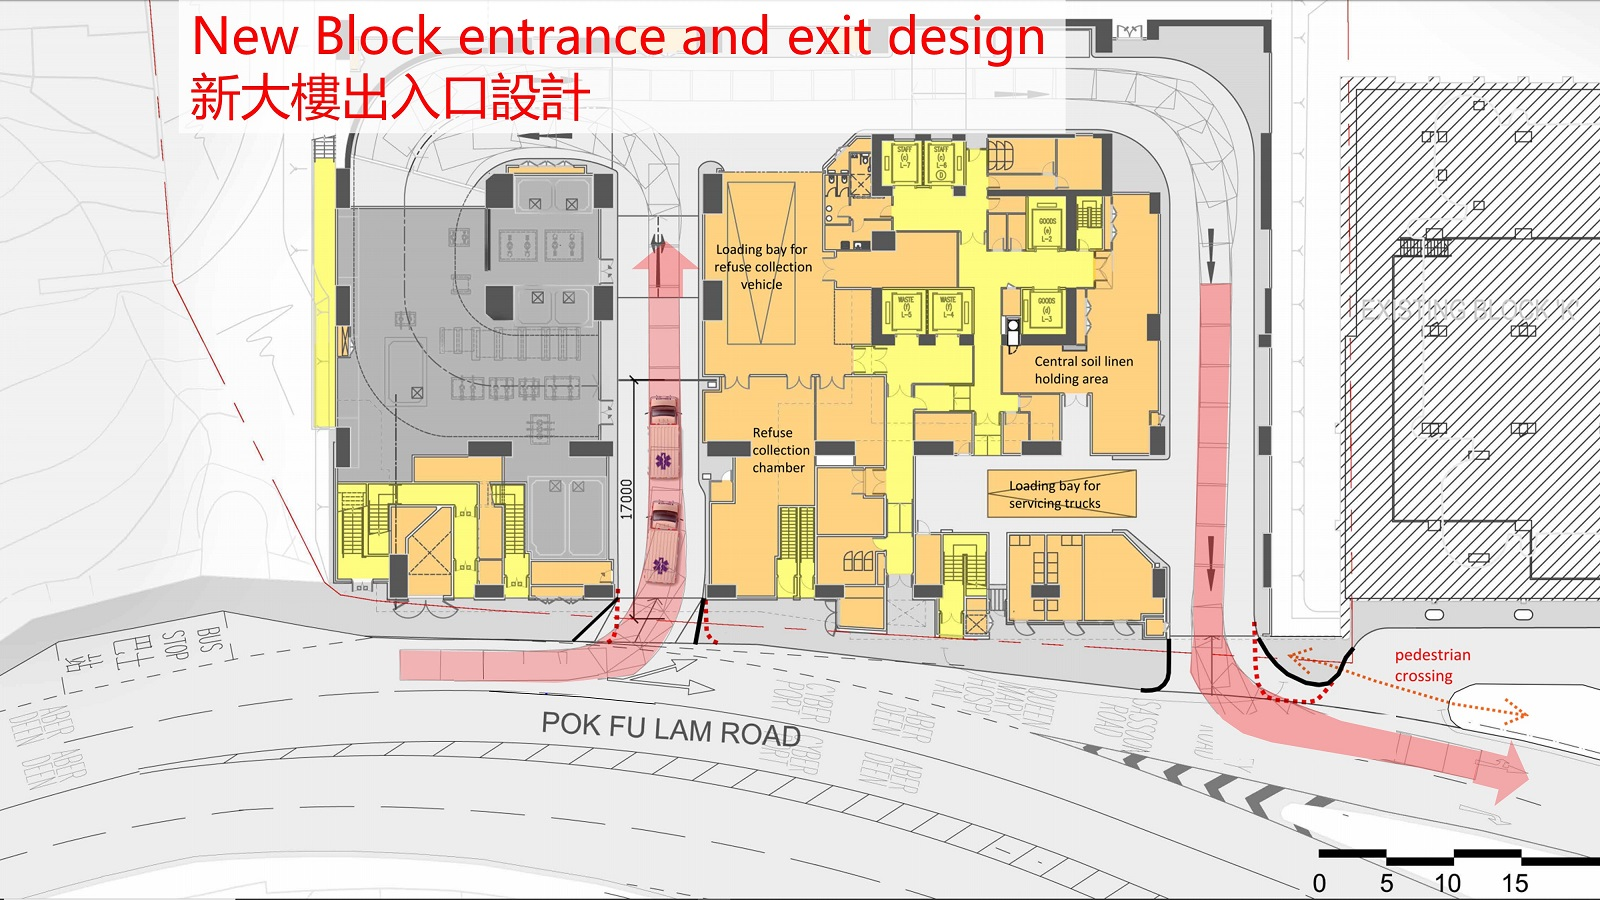 New Block entrance and exit design